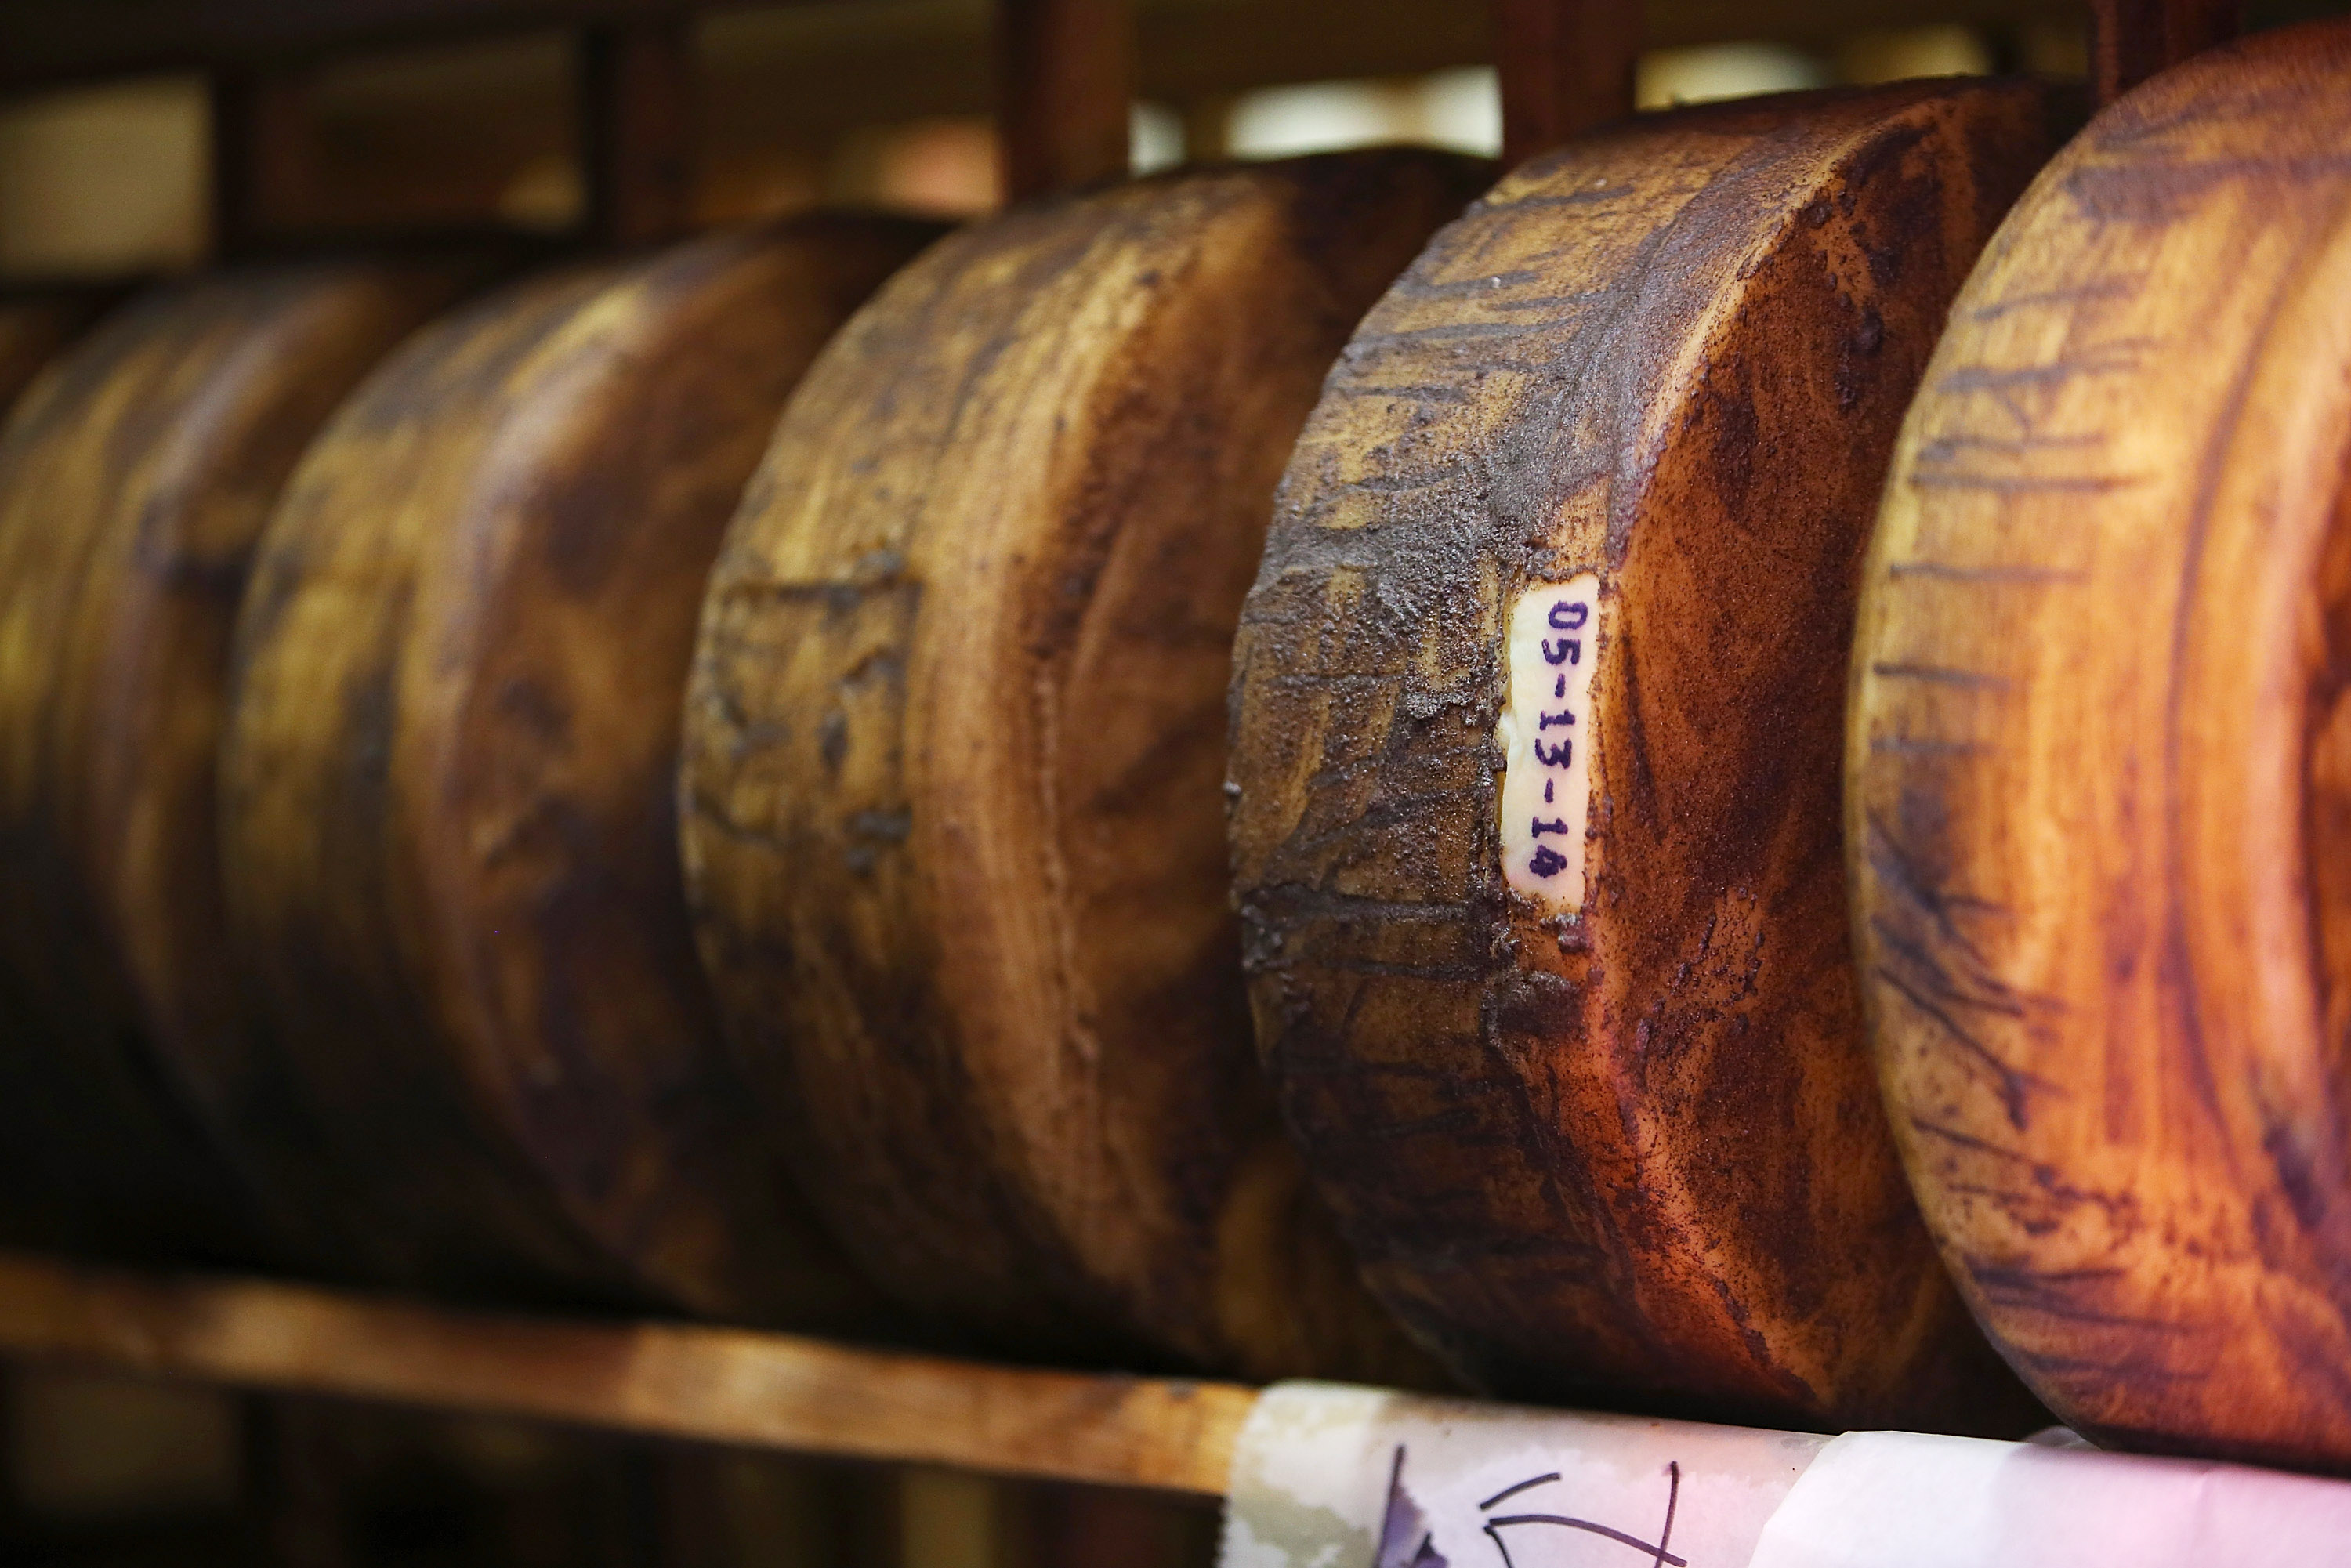 Wheels of jack cheese age on wooden racks in a cooler at Vella Cheese on June 10, 2014 in Sonoma, California.